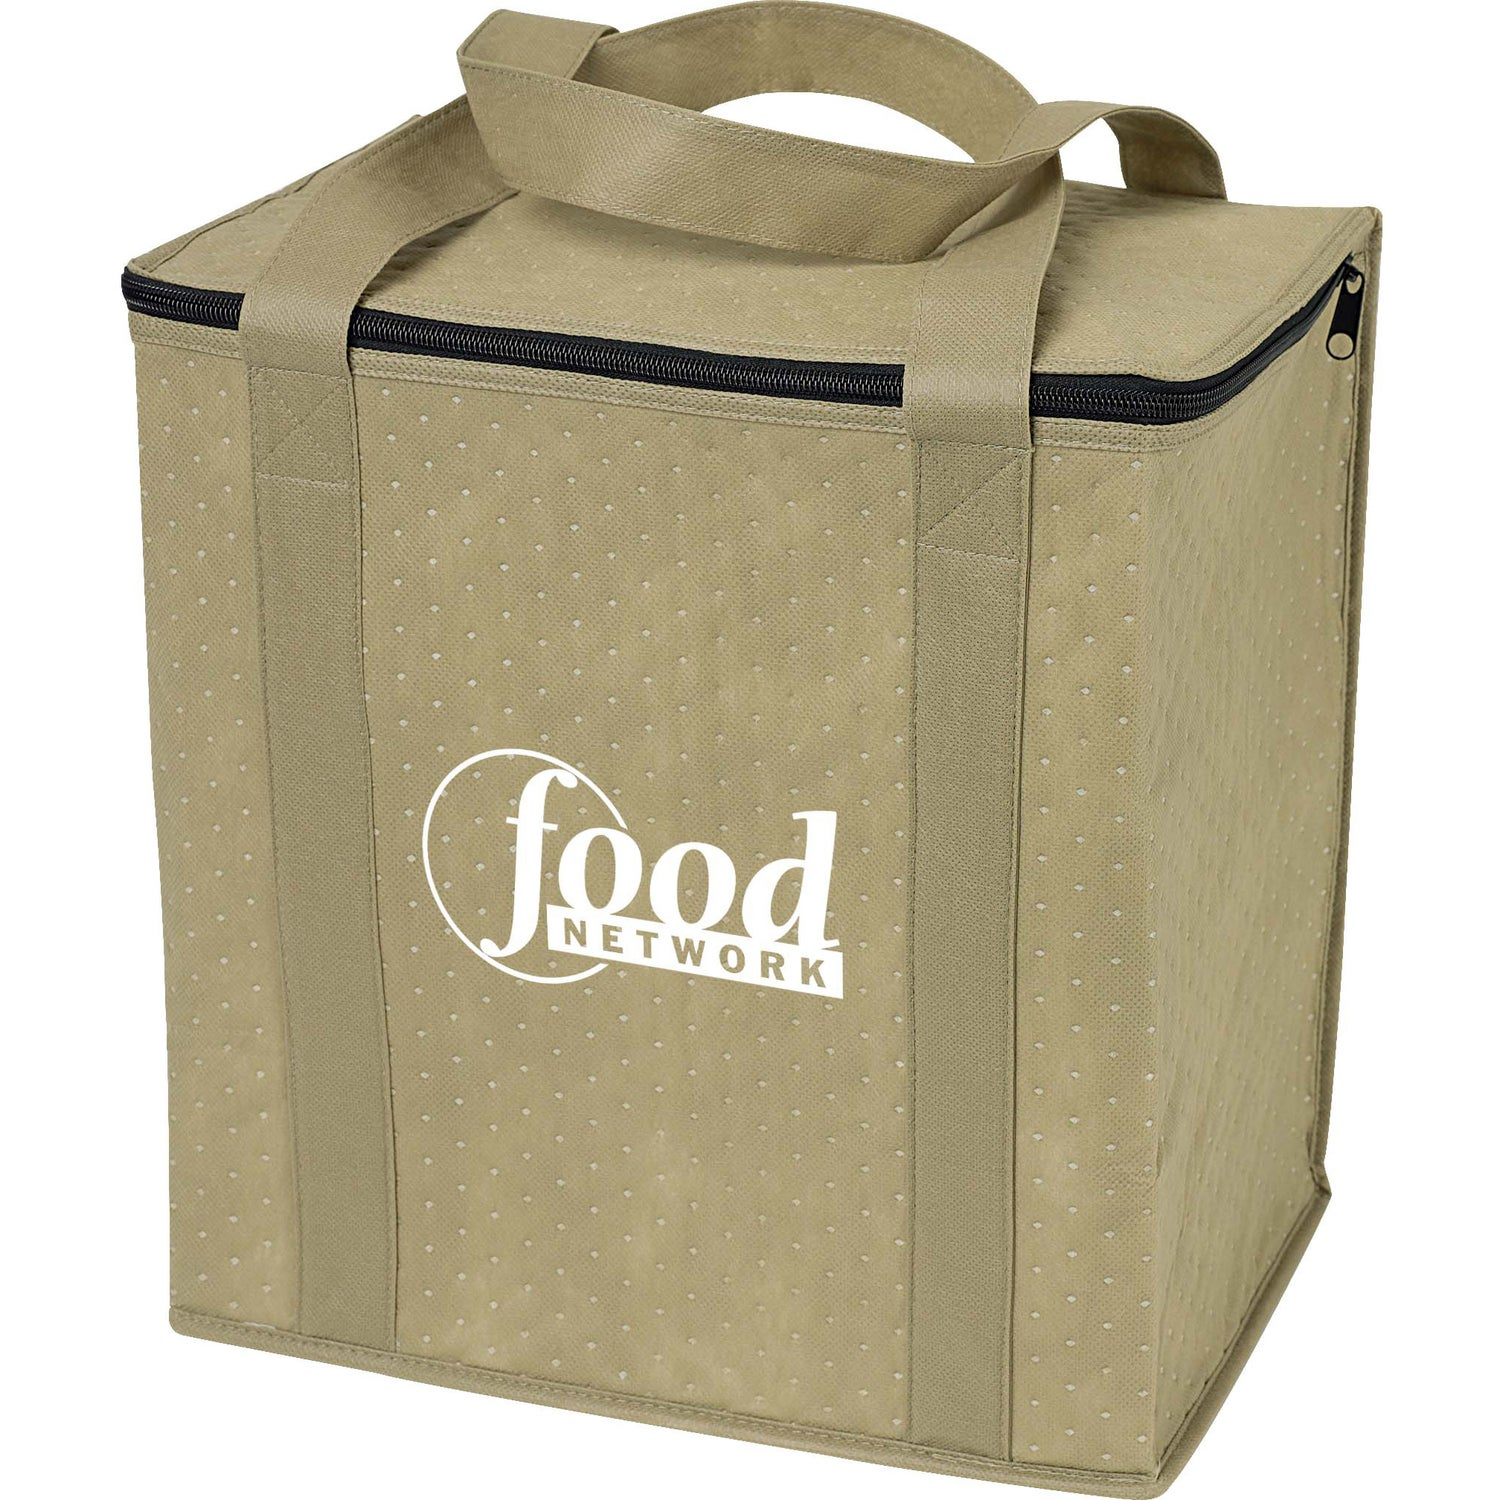 Tan Insulated Grocery Tote Bag For Your Company